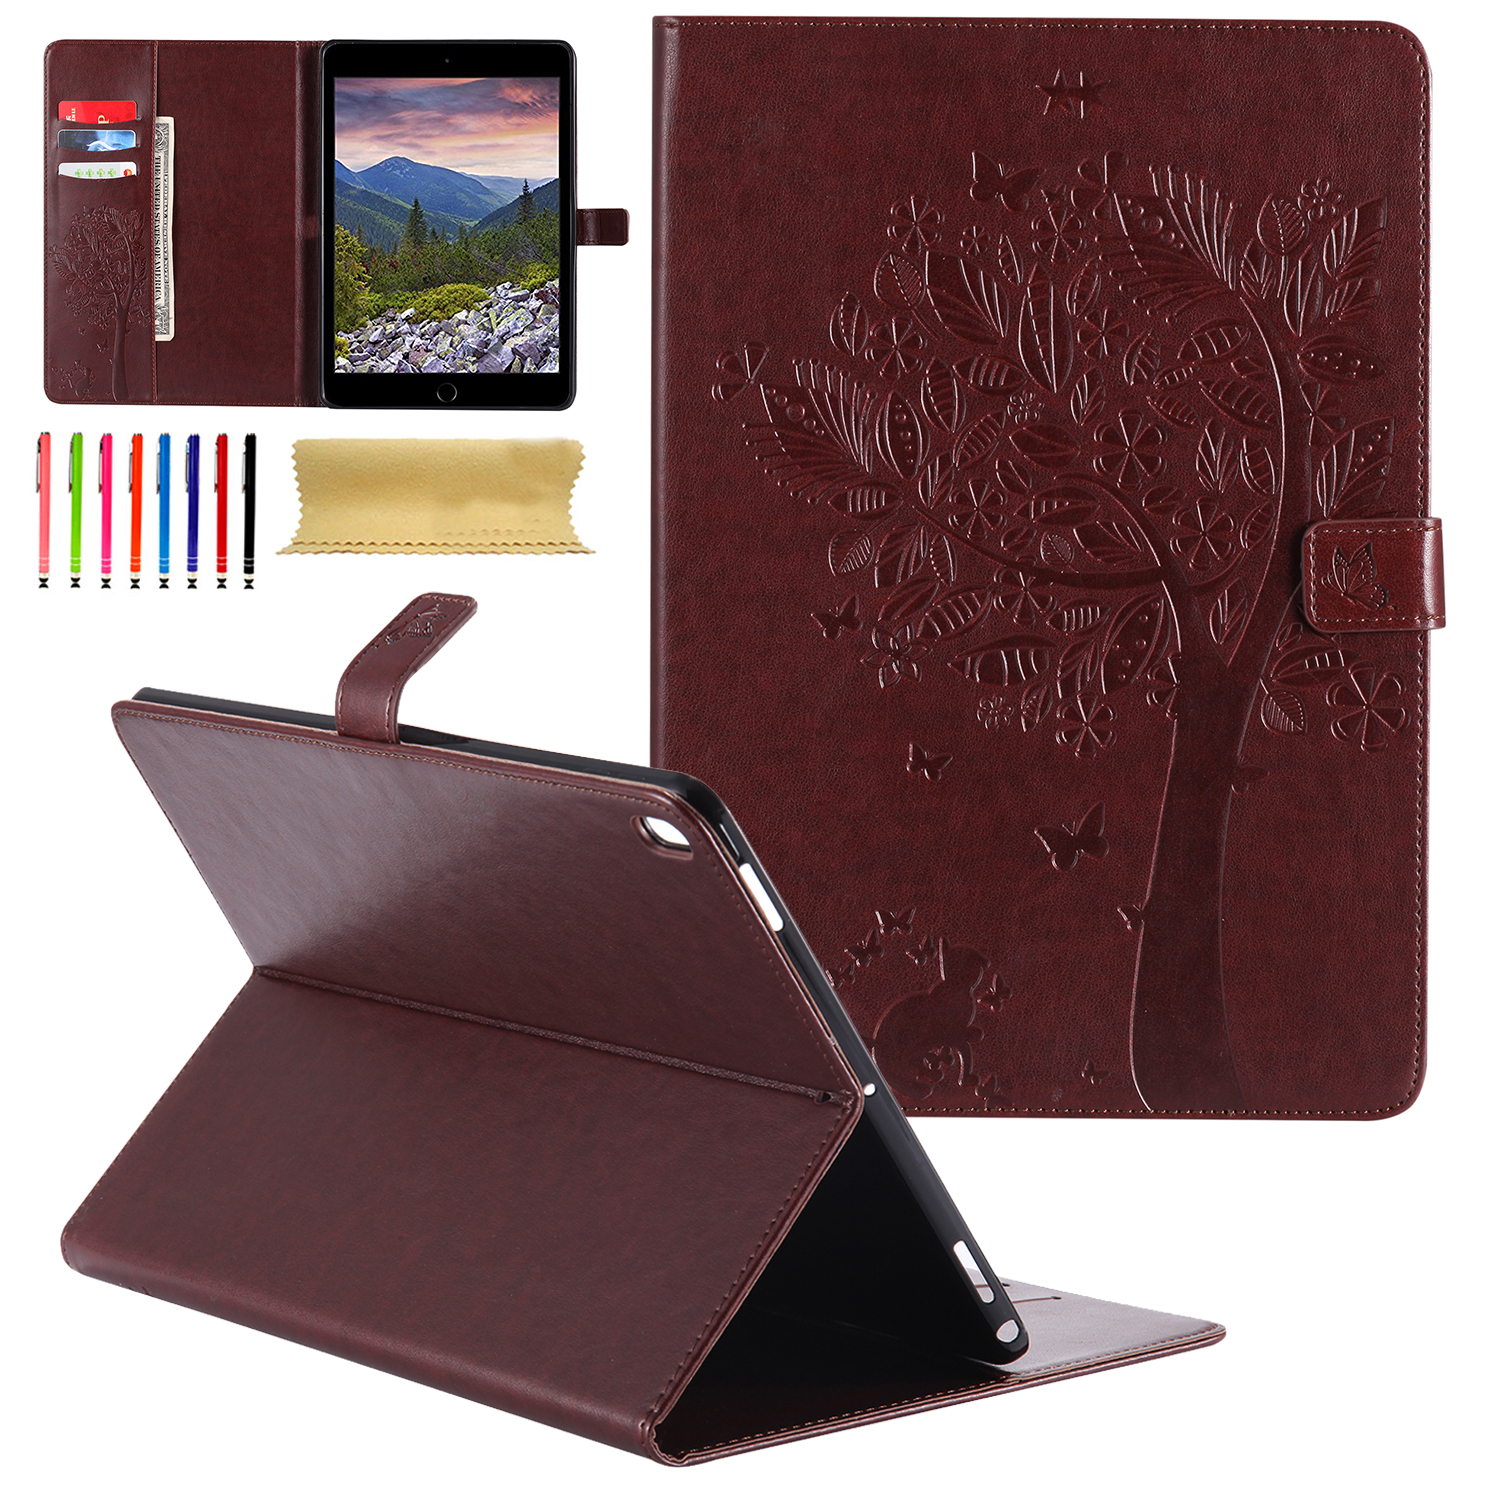 iPad Pro 10.5 Case, Goodest Embossed Butterfly Tree & Cat Magnetic PU Leather Smart Case w/Auto Sleep/Wake Function Stand Cover for Apple iPad Pro 10.5 2017, Coffee